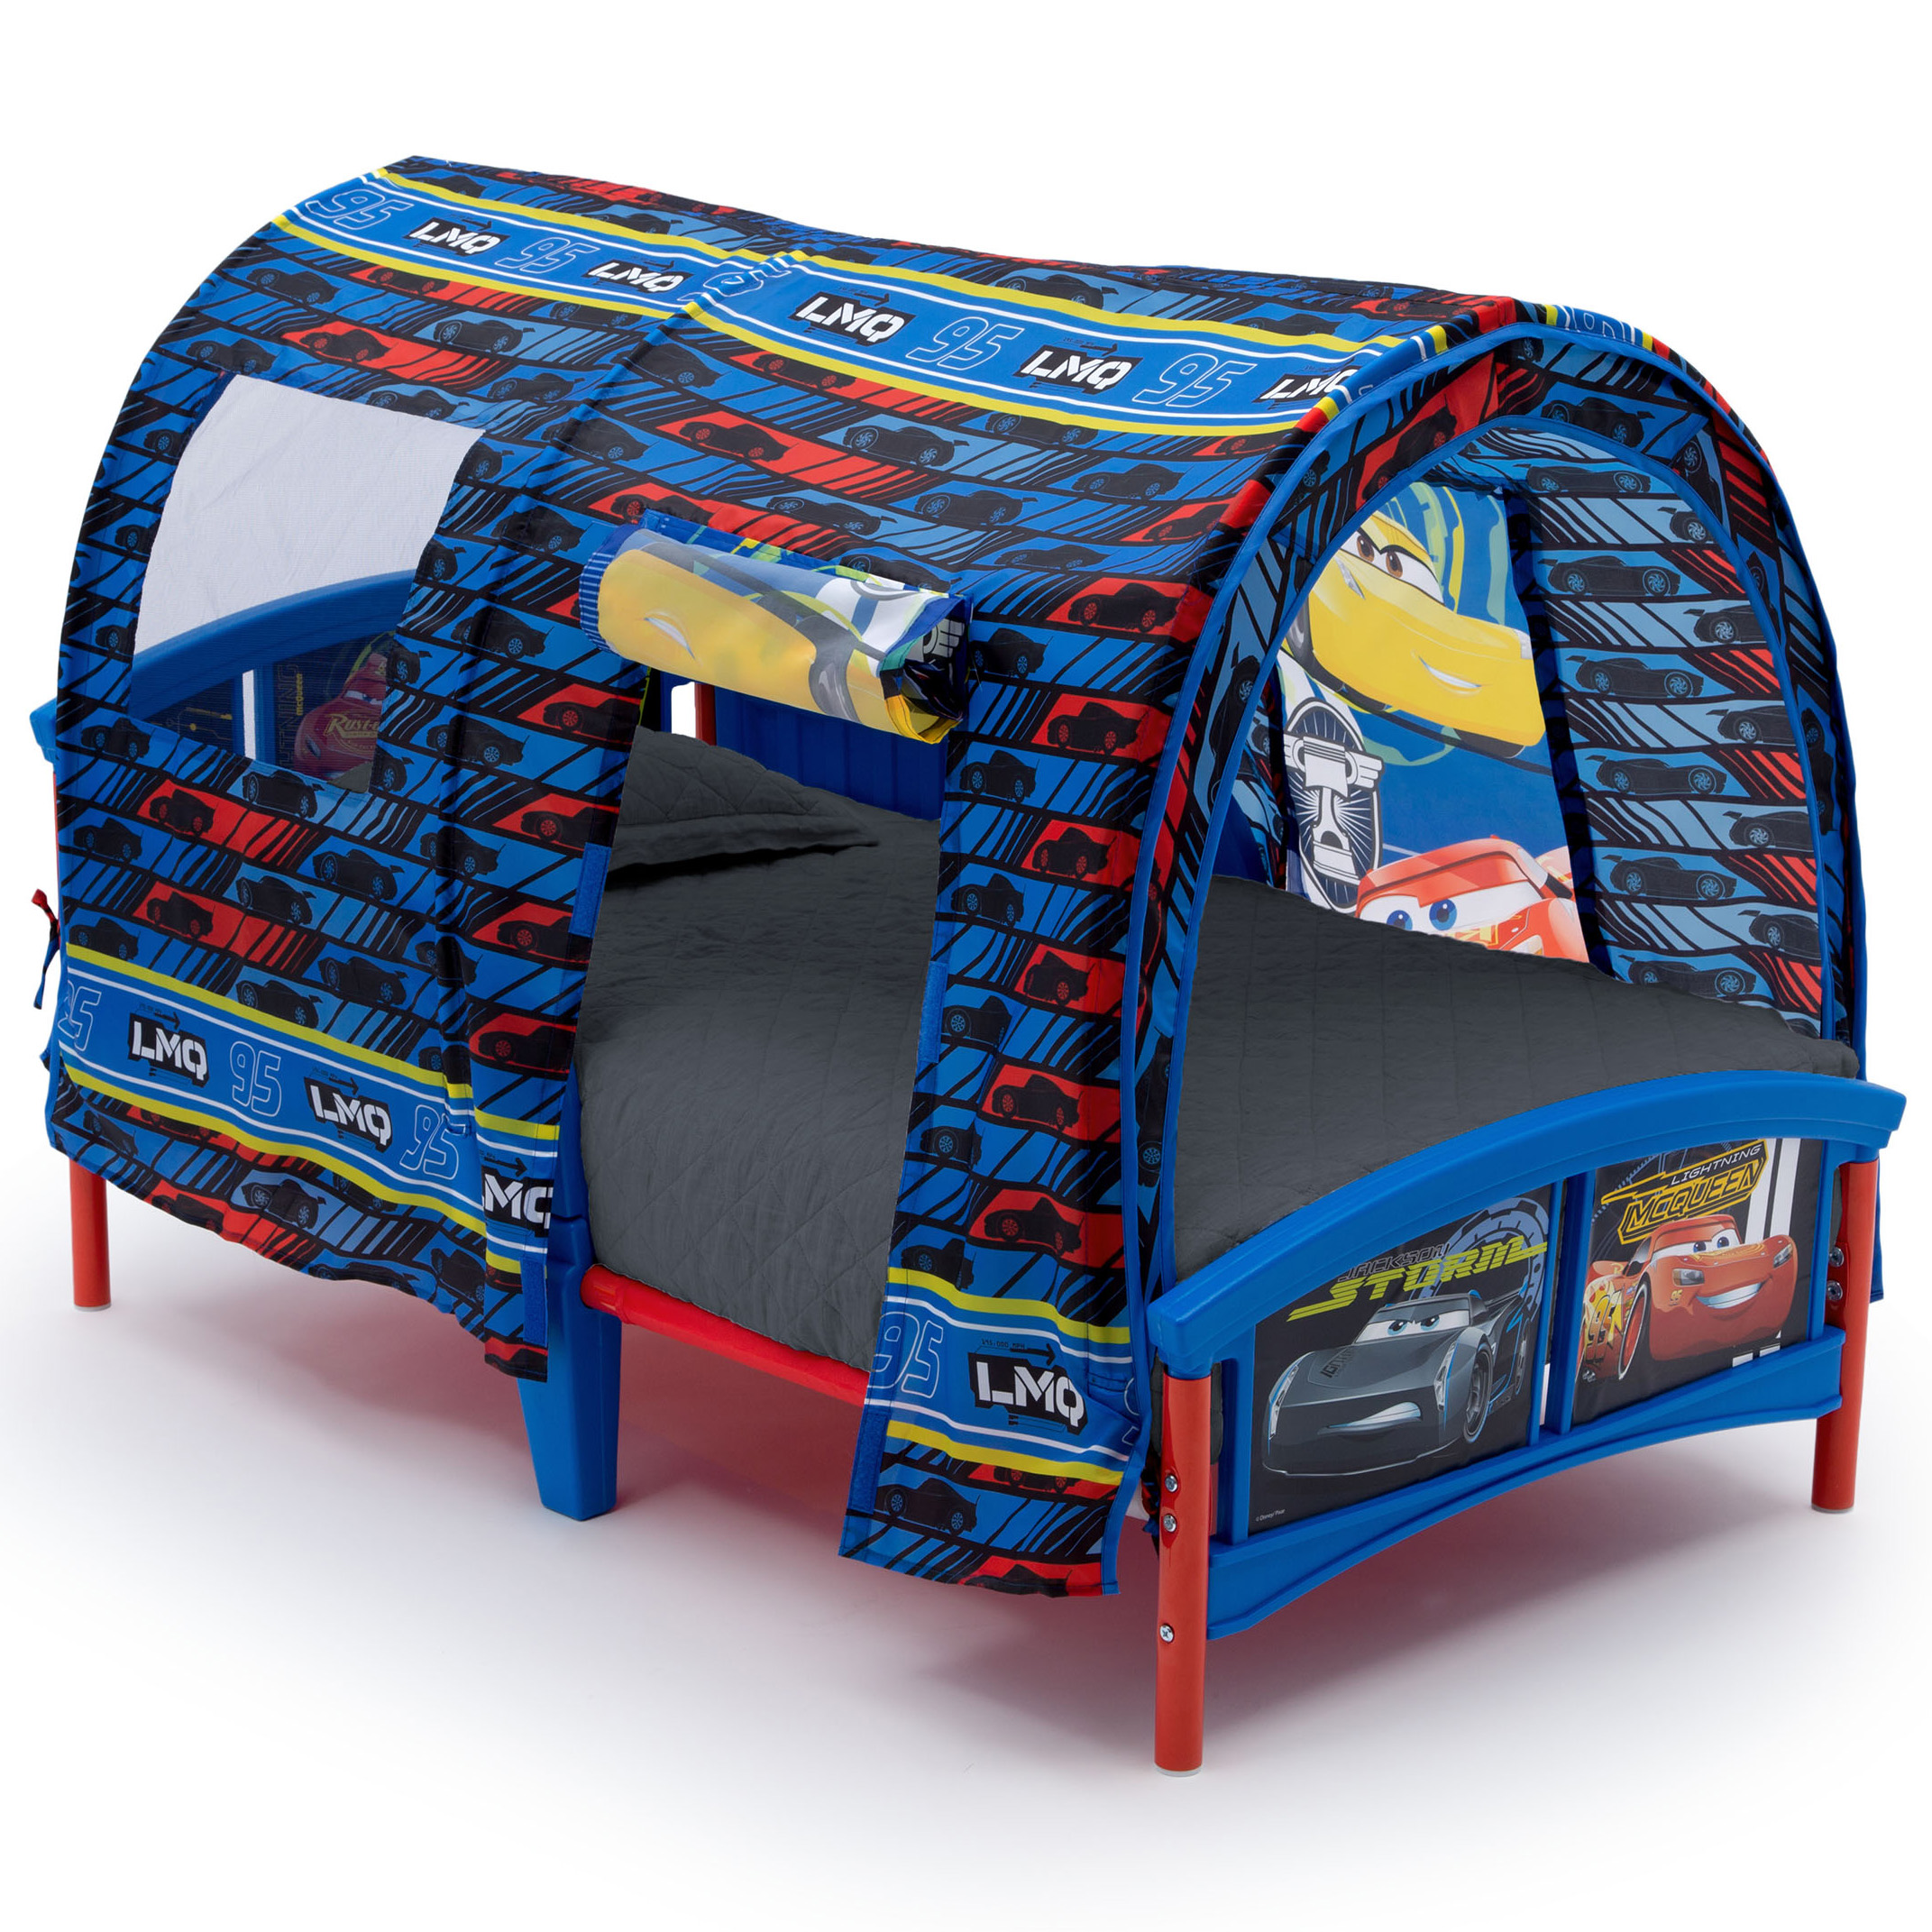 Disney Pixar Cars Plastic Toddler Bed with Tent by Delta Children by Delta Children